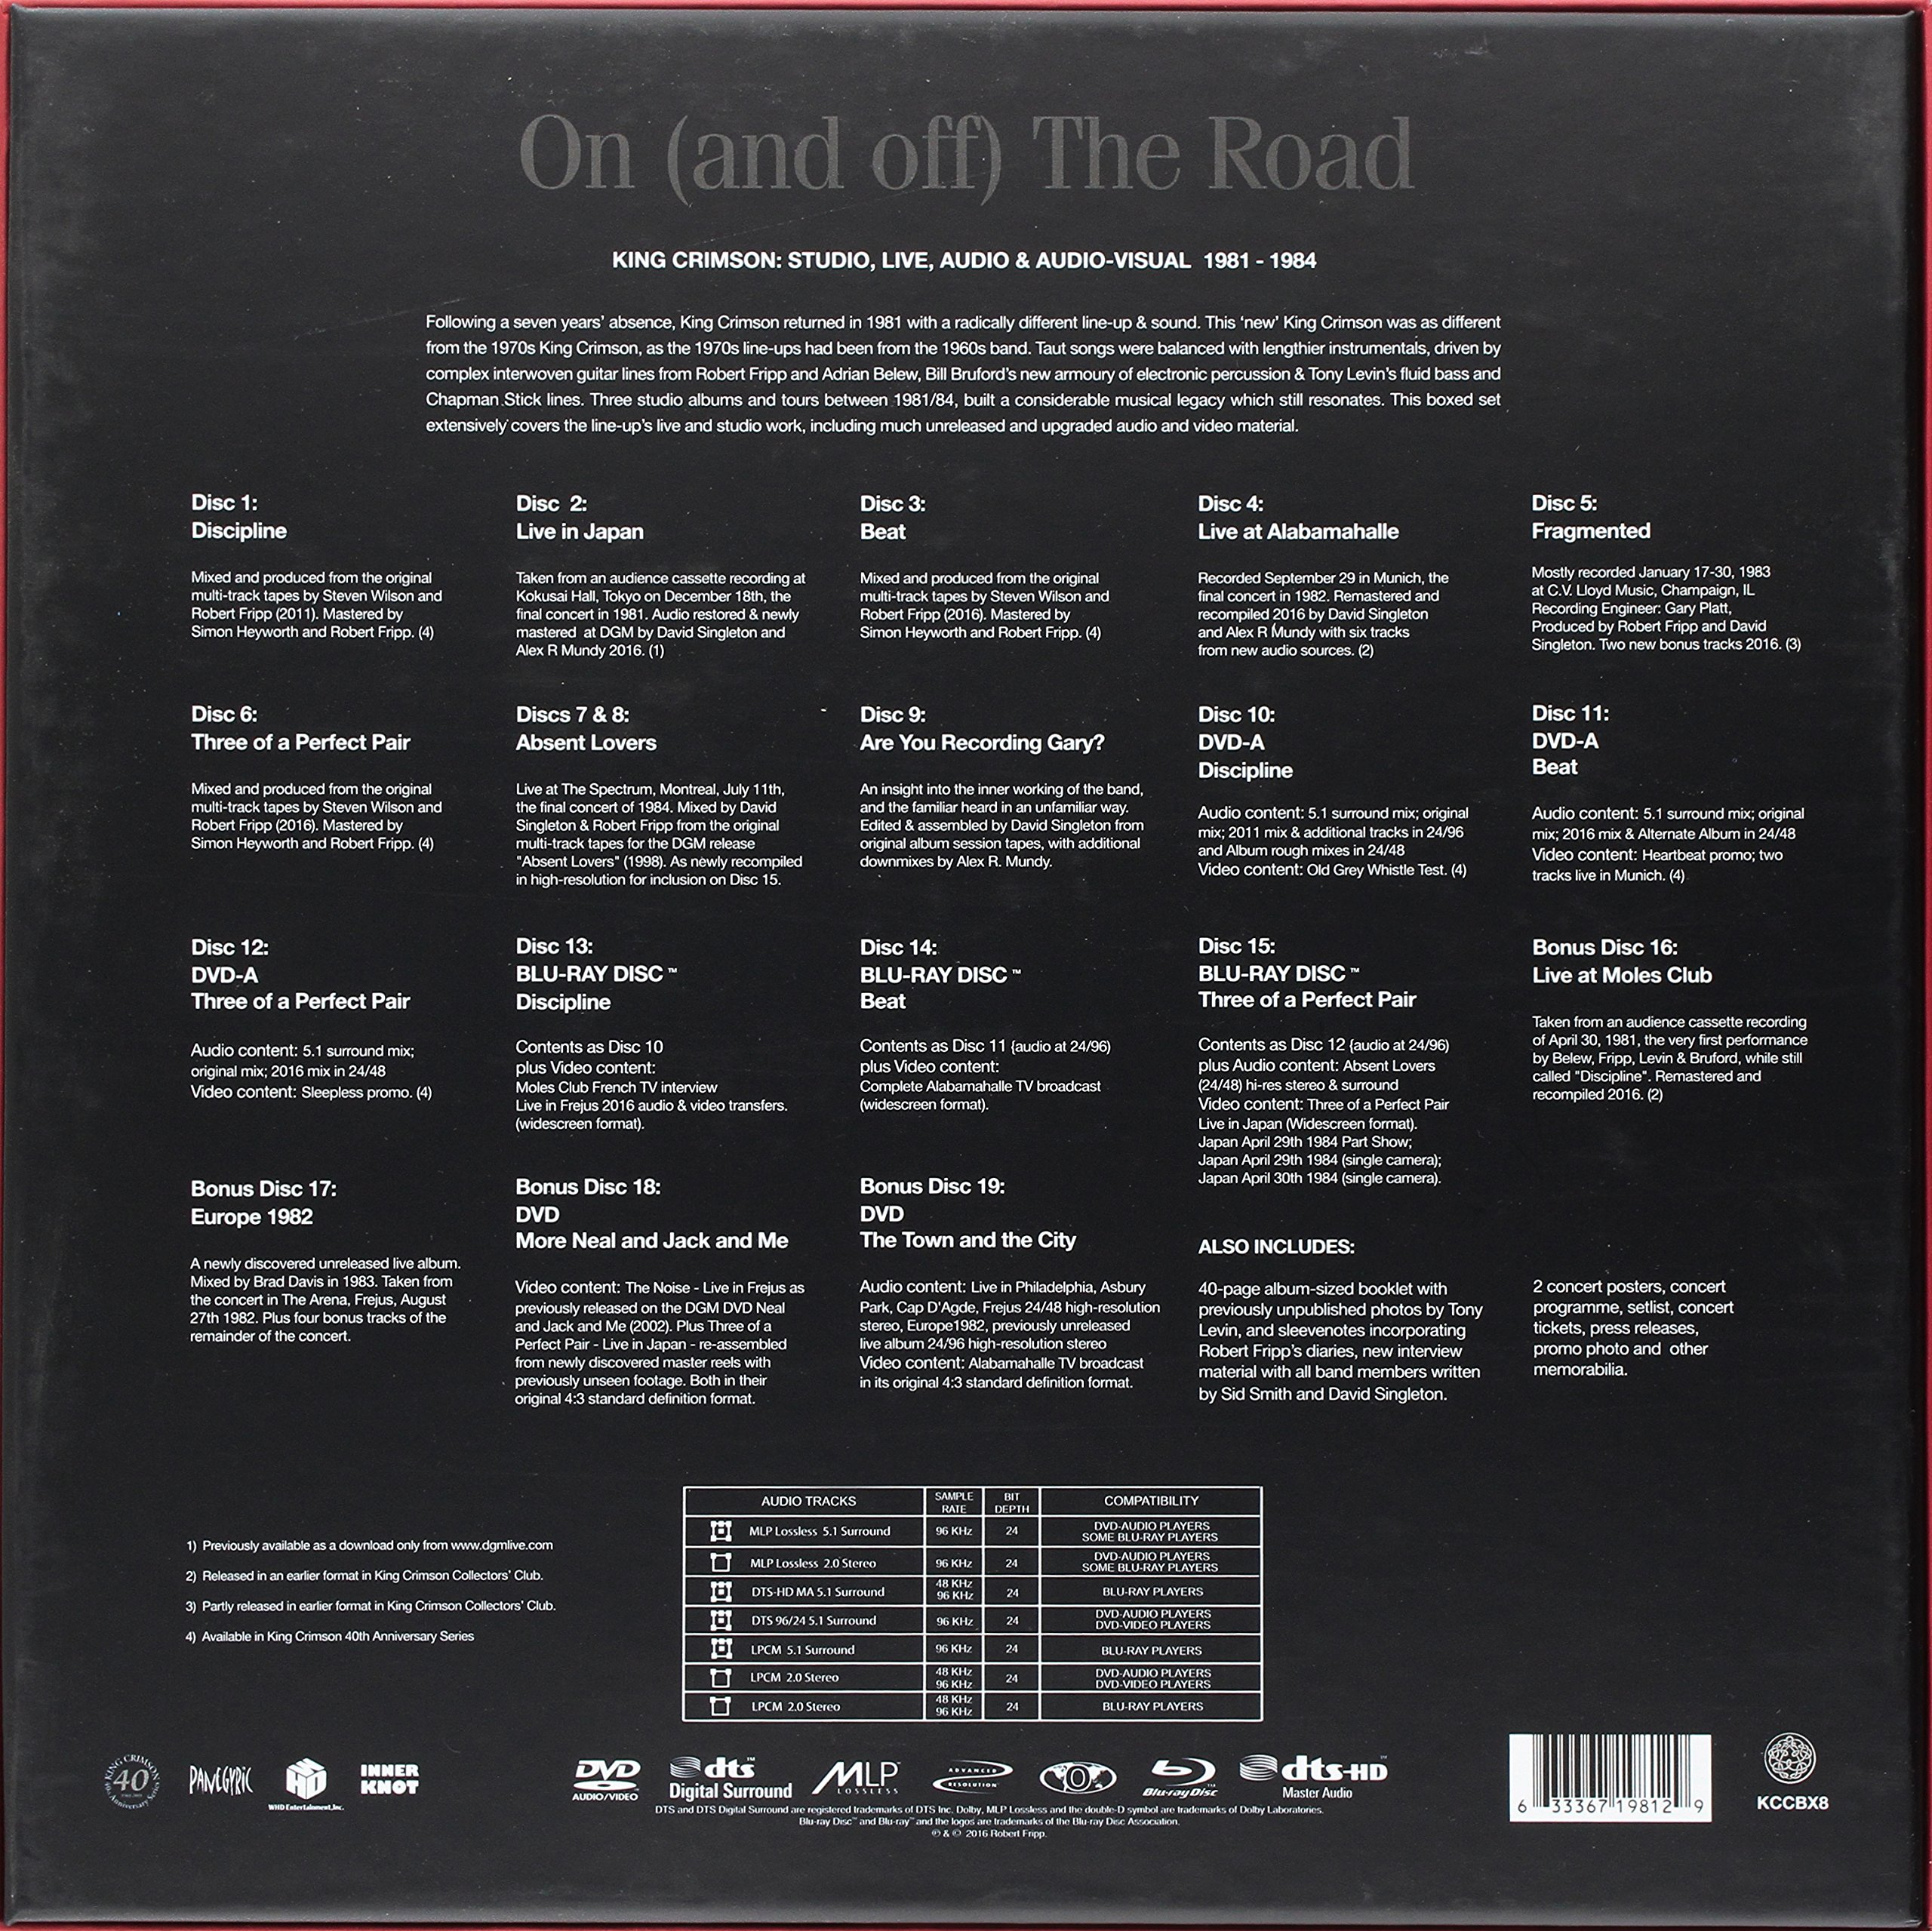 On (And Off) The Road: 1981-1984 by CD